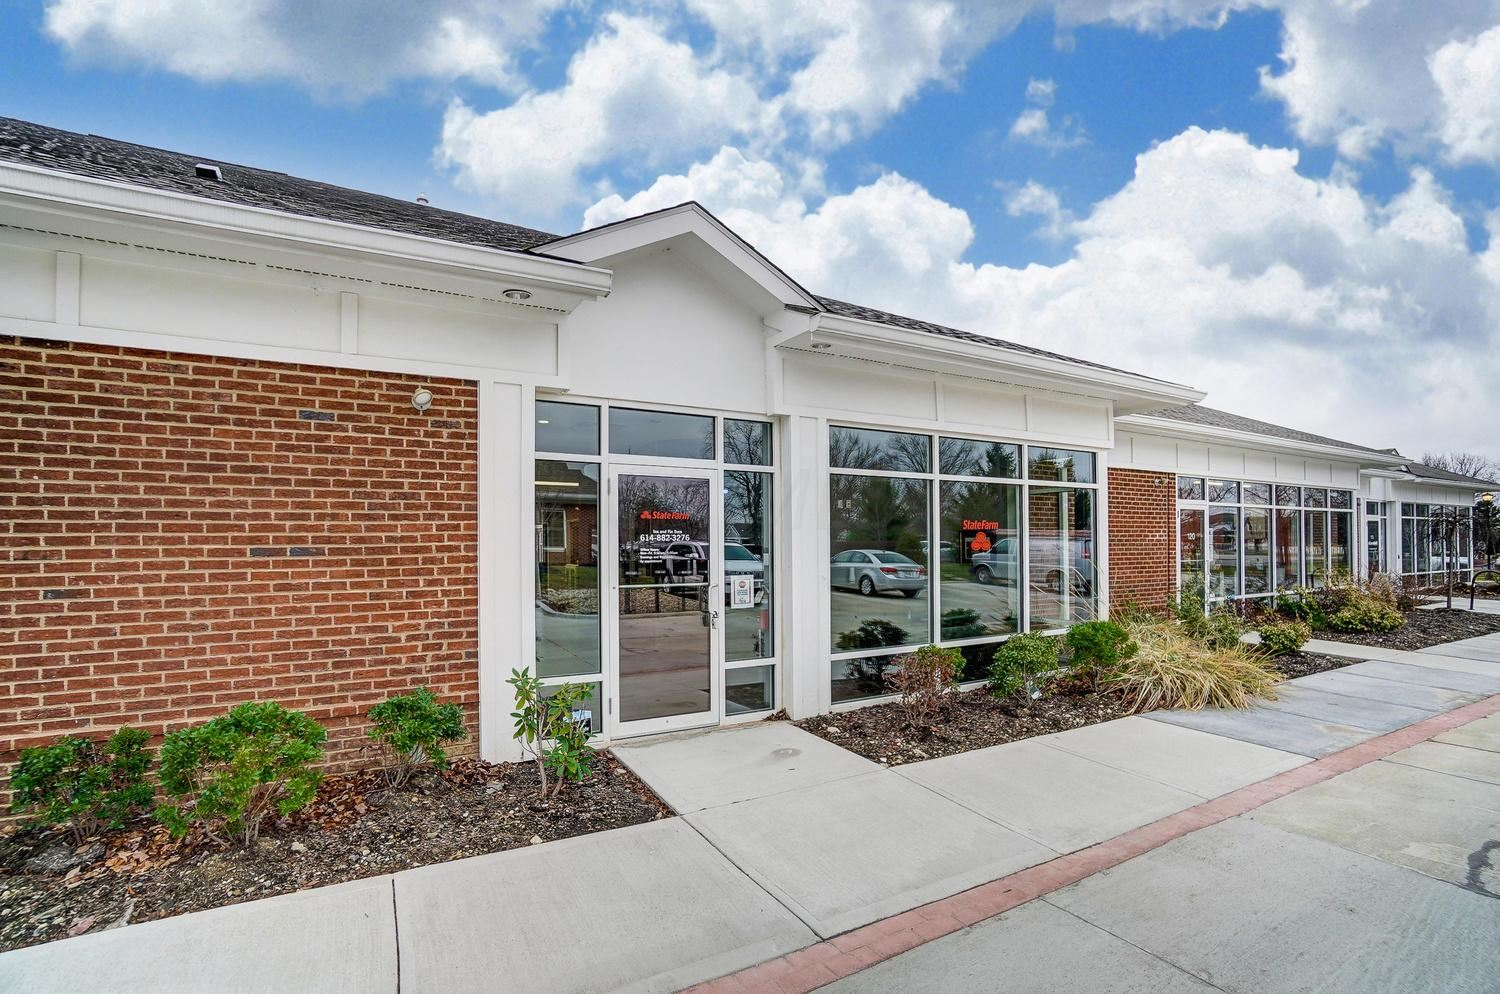 Photo of 580 Office Parkway, Westerville, OH 43082 (MLS # 220040699)